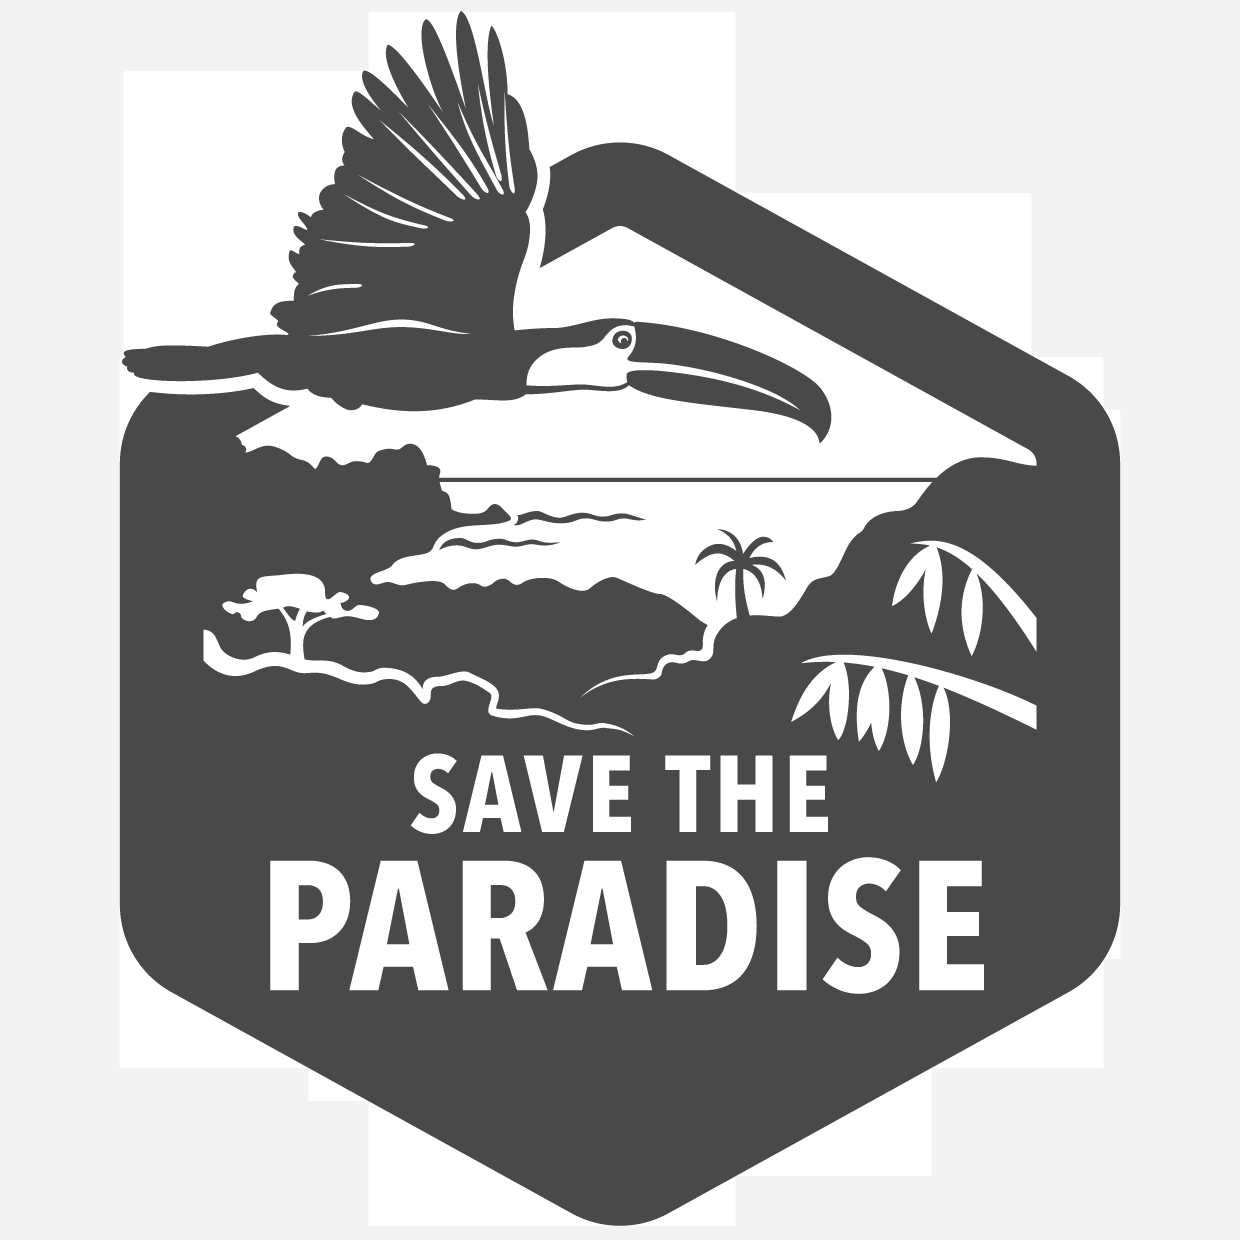 Save the Paradise